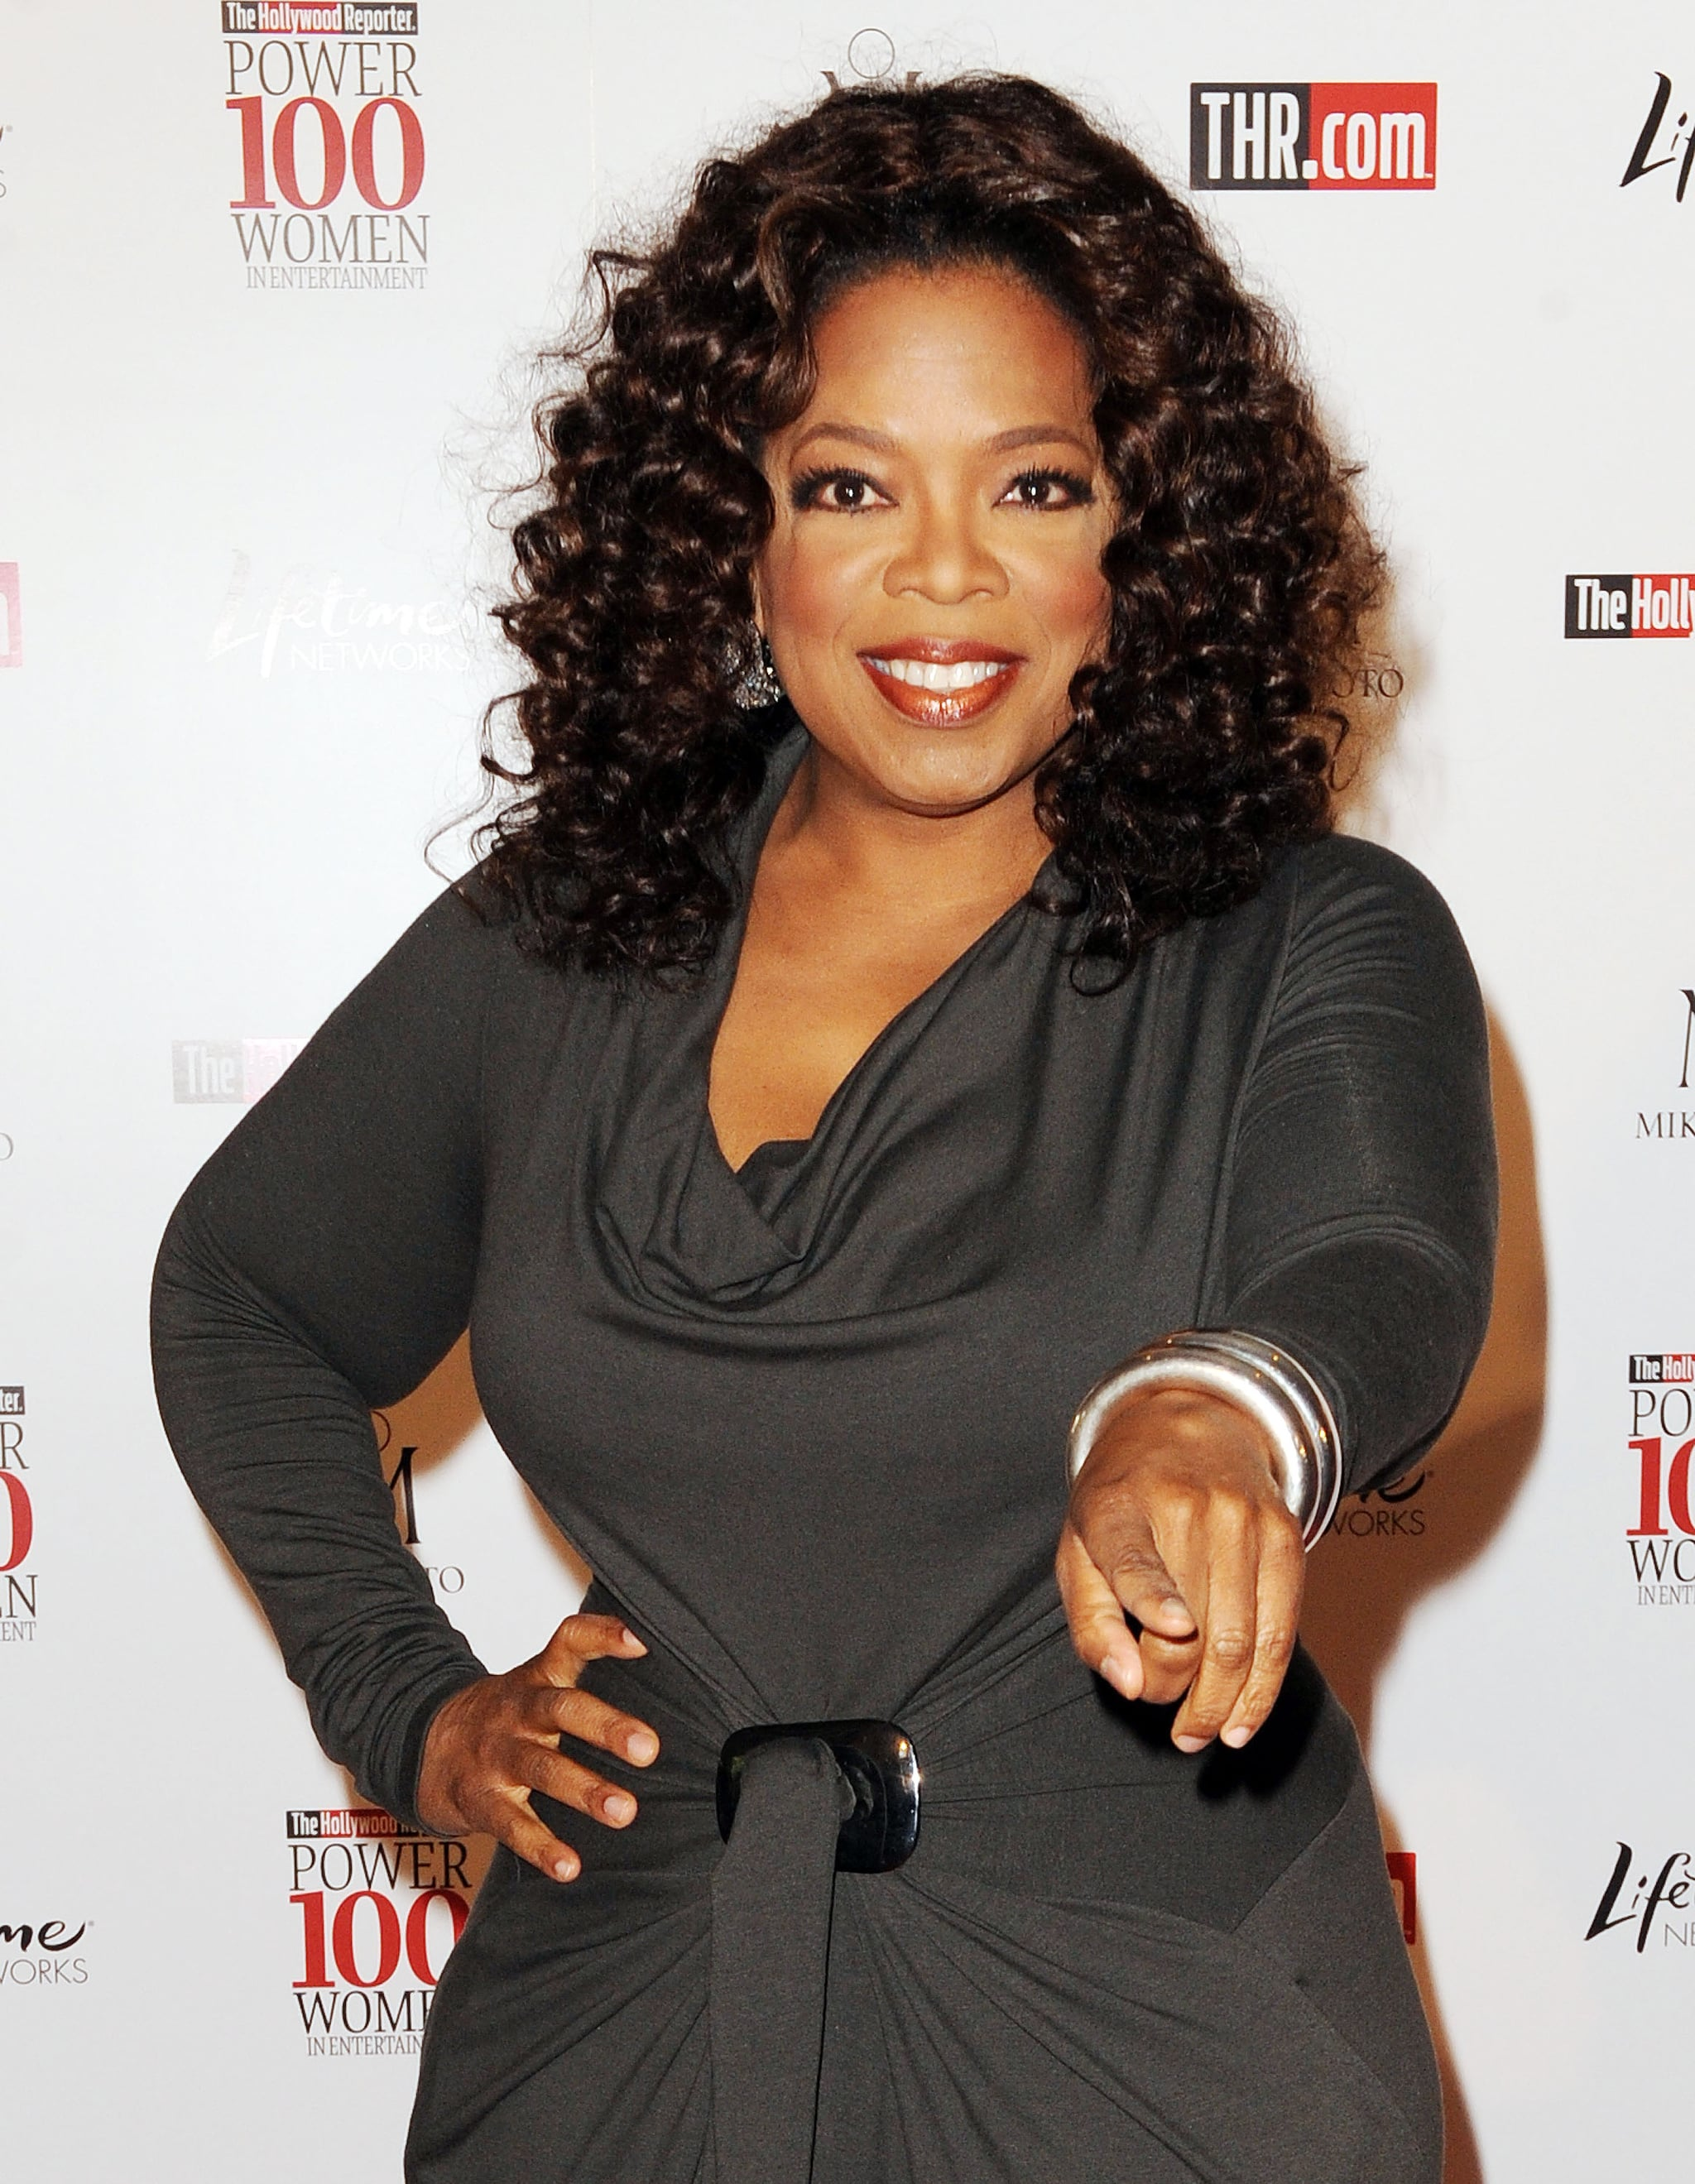 Oprah attended the Women In Entertainment Power 100 breakfast in December 2008 at the Beverly Hills Hotel.